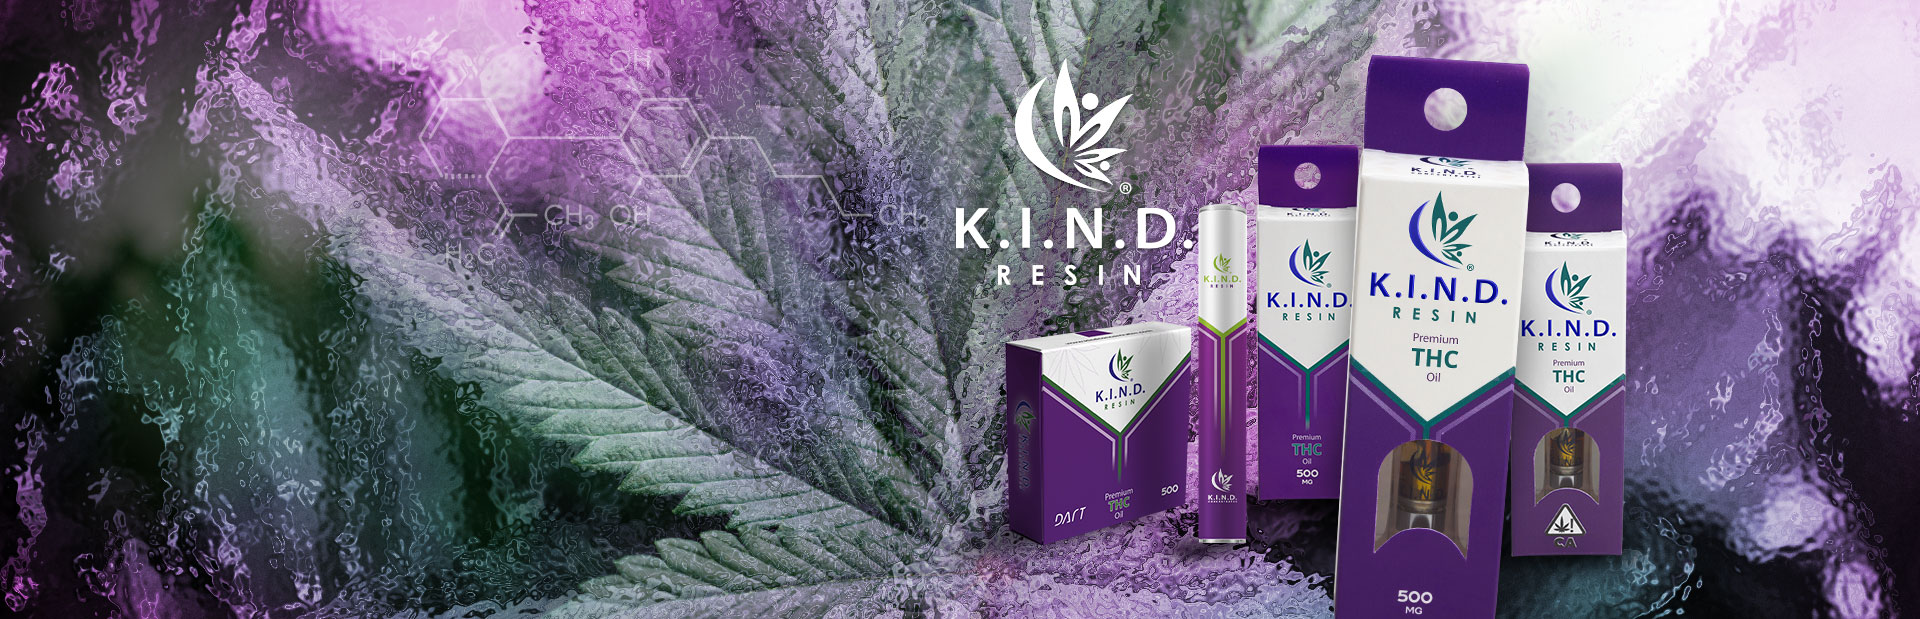 K.I.N.D. Resin vape pen and THC carts